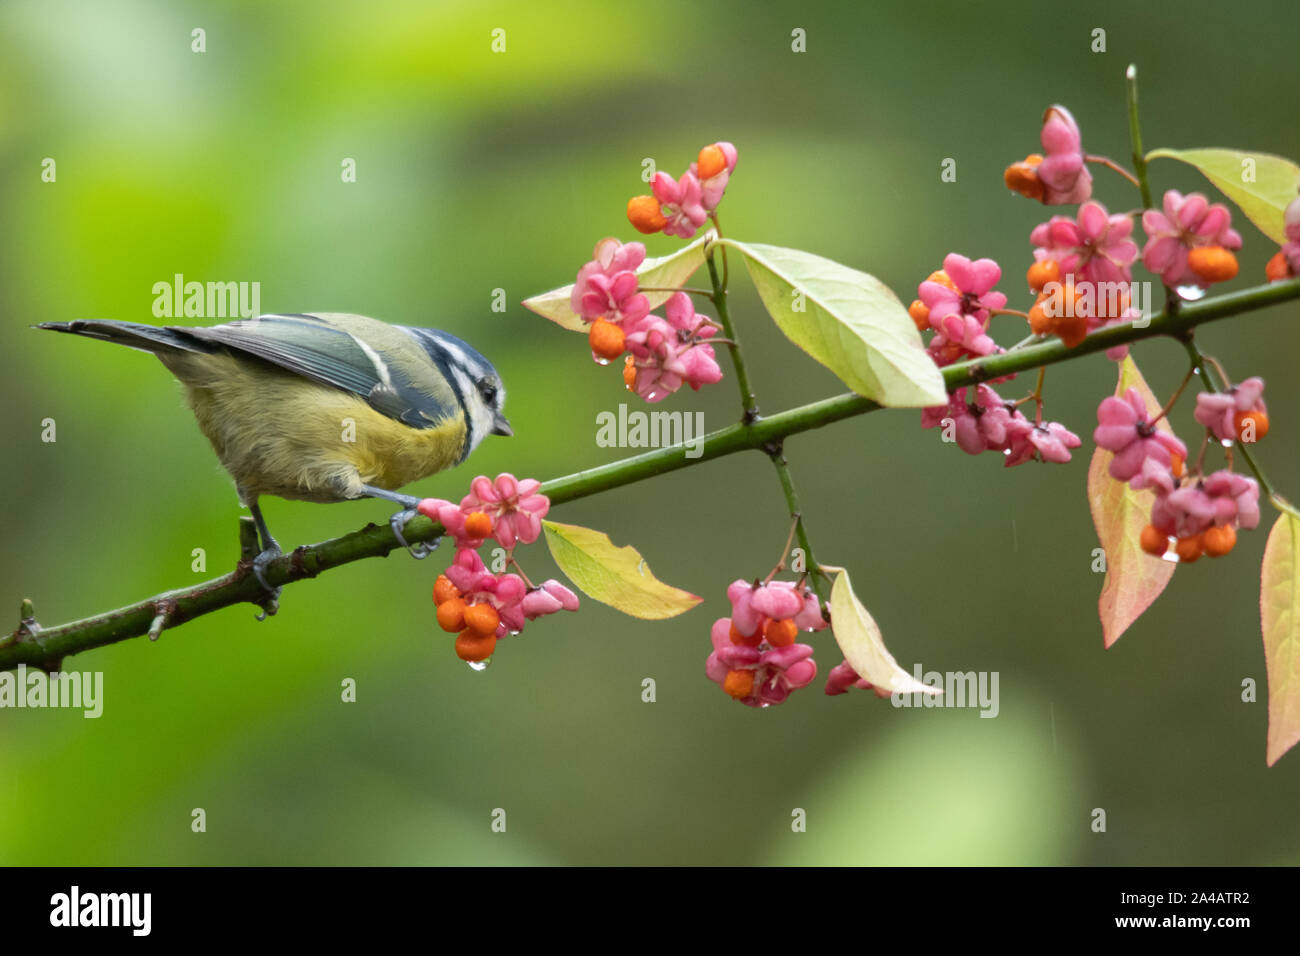 blue-tit-cyanistes-caeruleus-perched-in-a-spindle-tree-euonymus-europaea-during-autumn-with-pink-and-orange-berries-uk-2A4ATR2.jpg